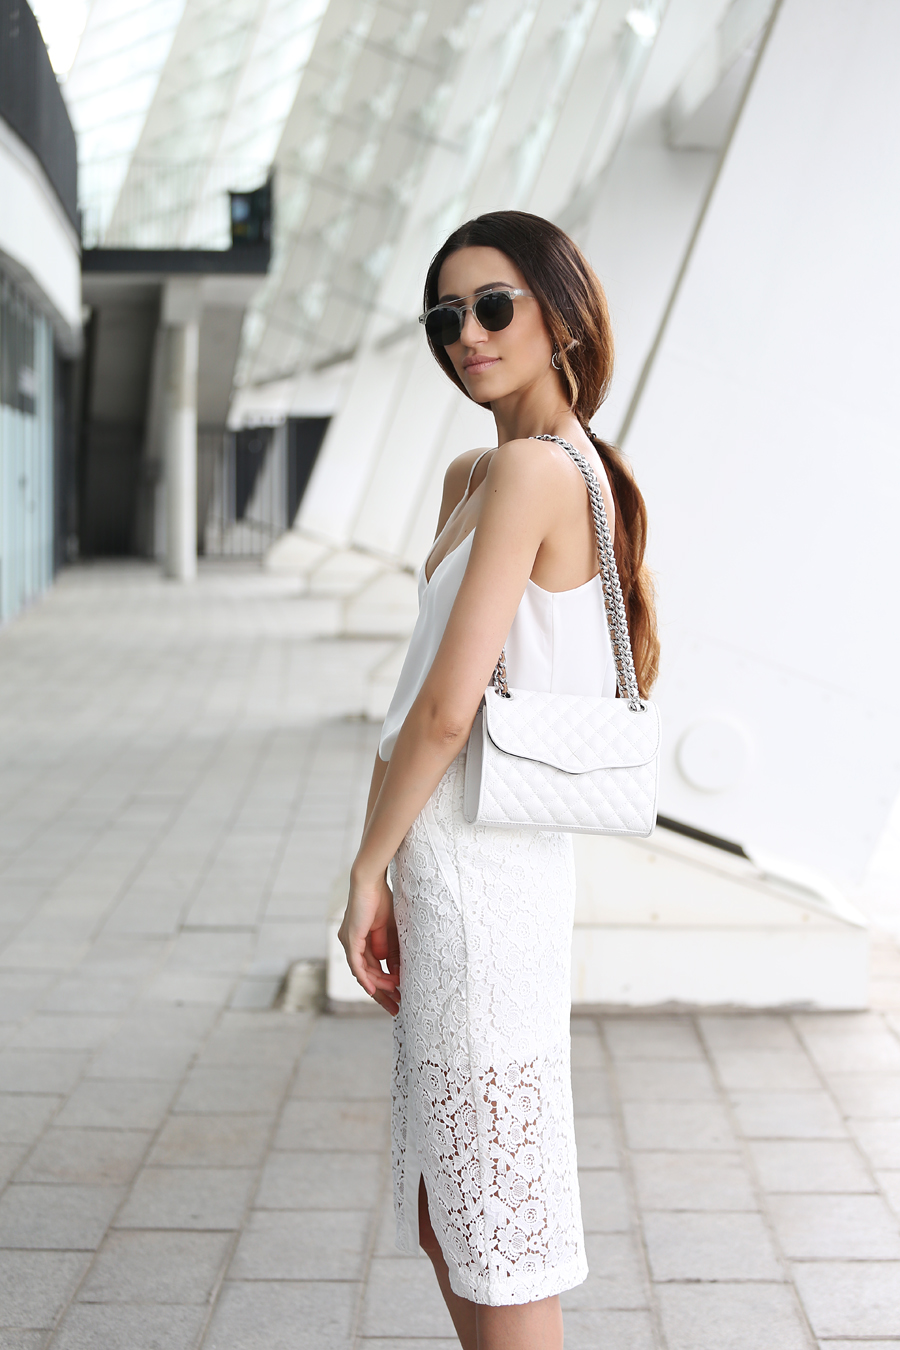 Tina Sizonova in a white lace midi skirt and a white cami top accessorised with a sidebag Skirt/Top: Love Republic, Bag: Rebecca Minkoff